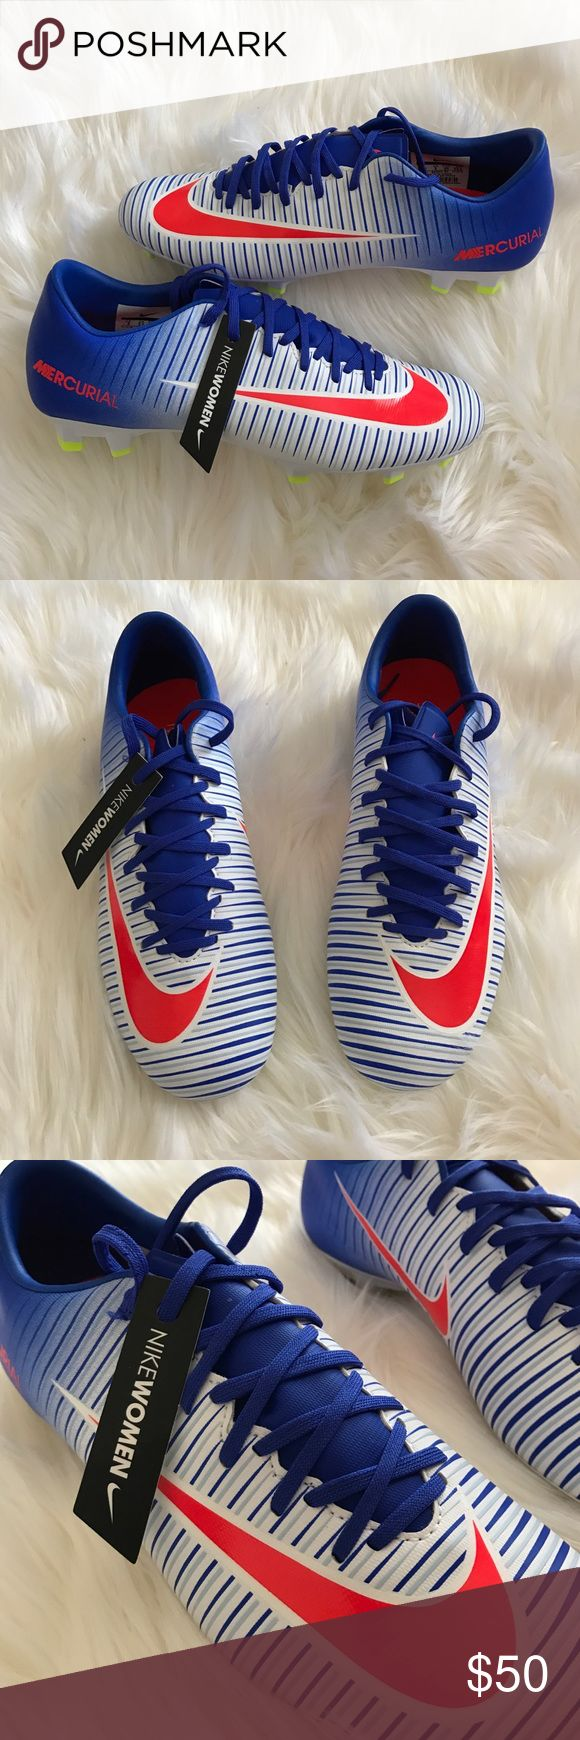 Nike Mercurial Vortex III cleats New Nike Mercurial soccer cleats in red/white/blue. New with Nike Women tag, no box. Nike Shoes Athletic Shoes